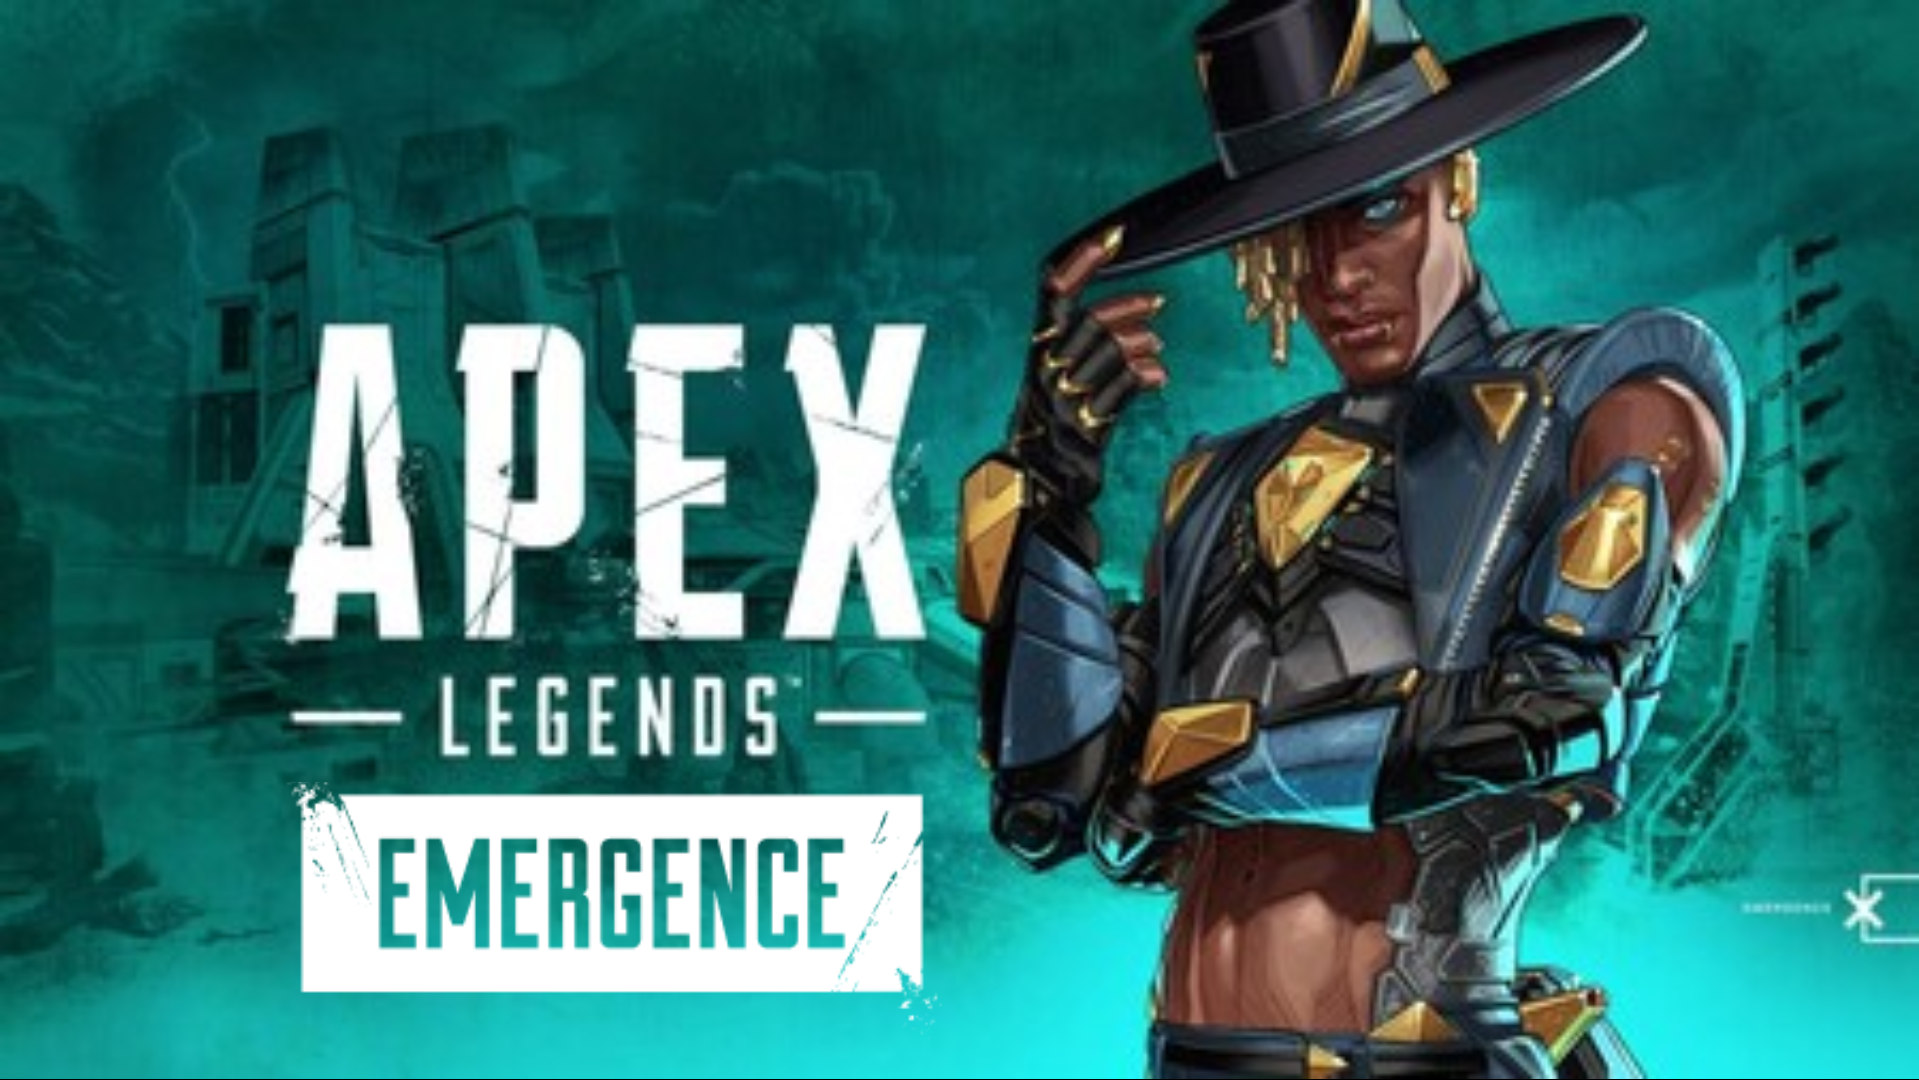 Apex Legends – Emergence Details, Leaks And Teasers